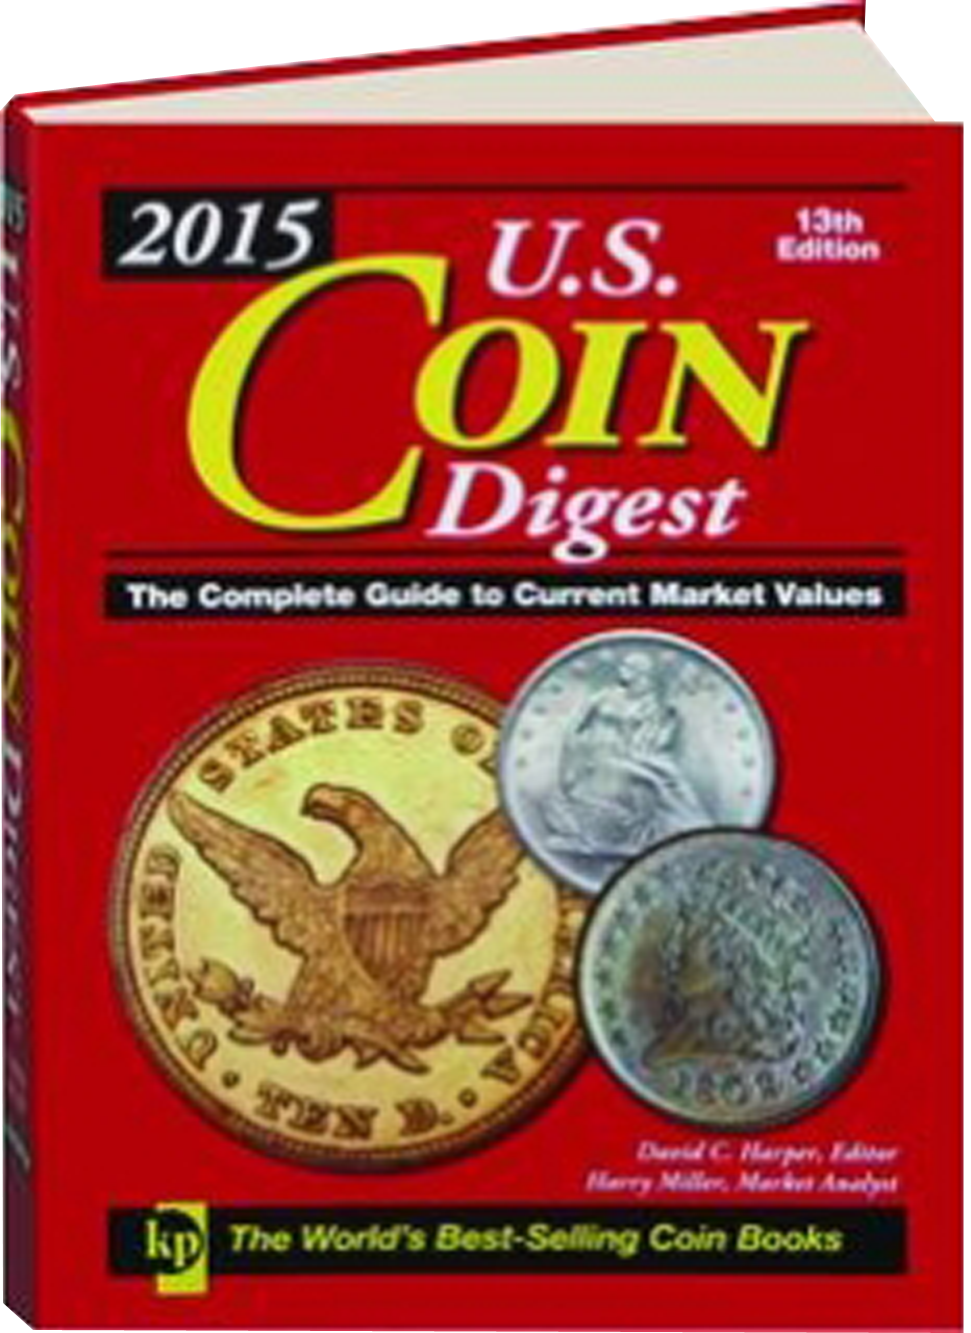 2015 US Coin Digest, 13th Edition